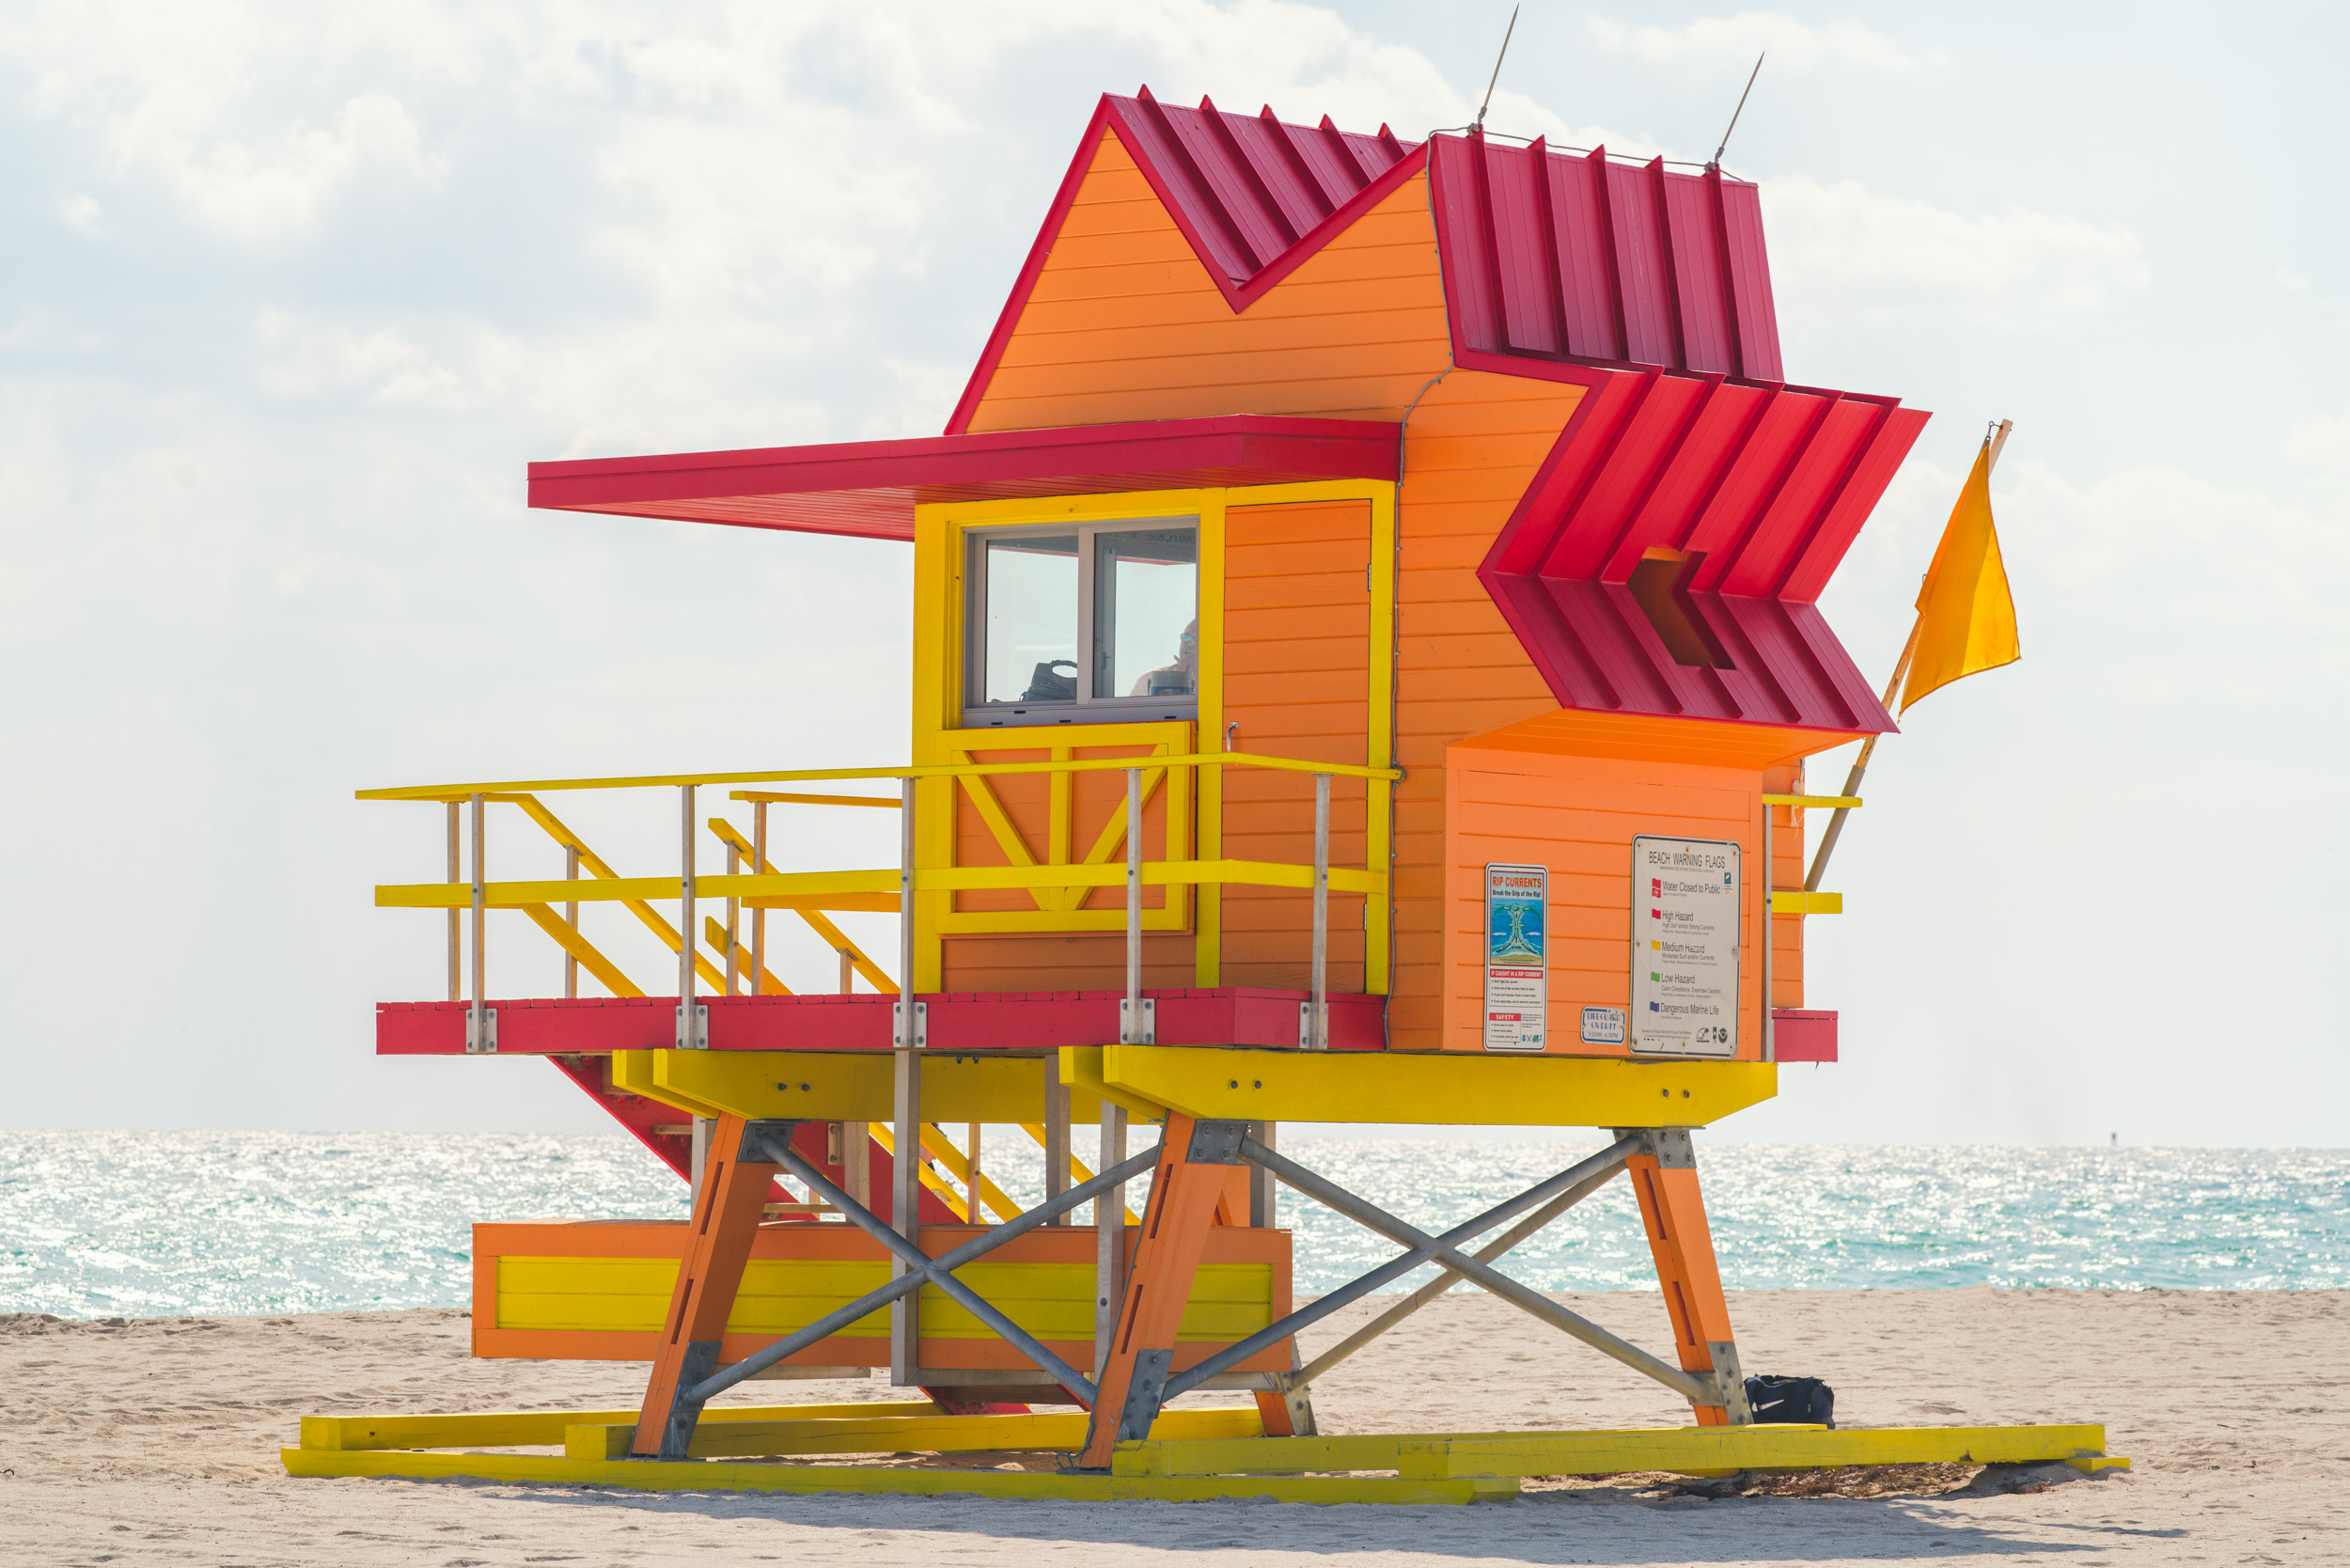 8th St. Miami Lifeguard Stand - Side View